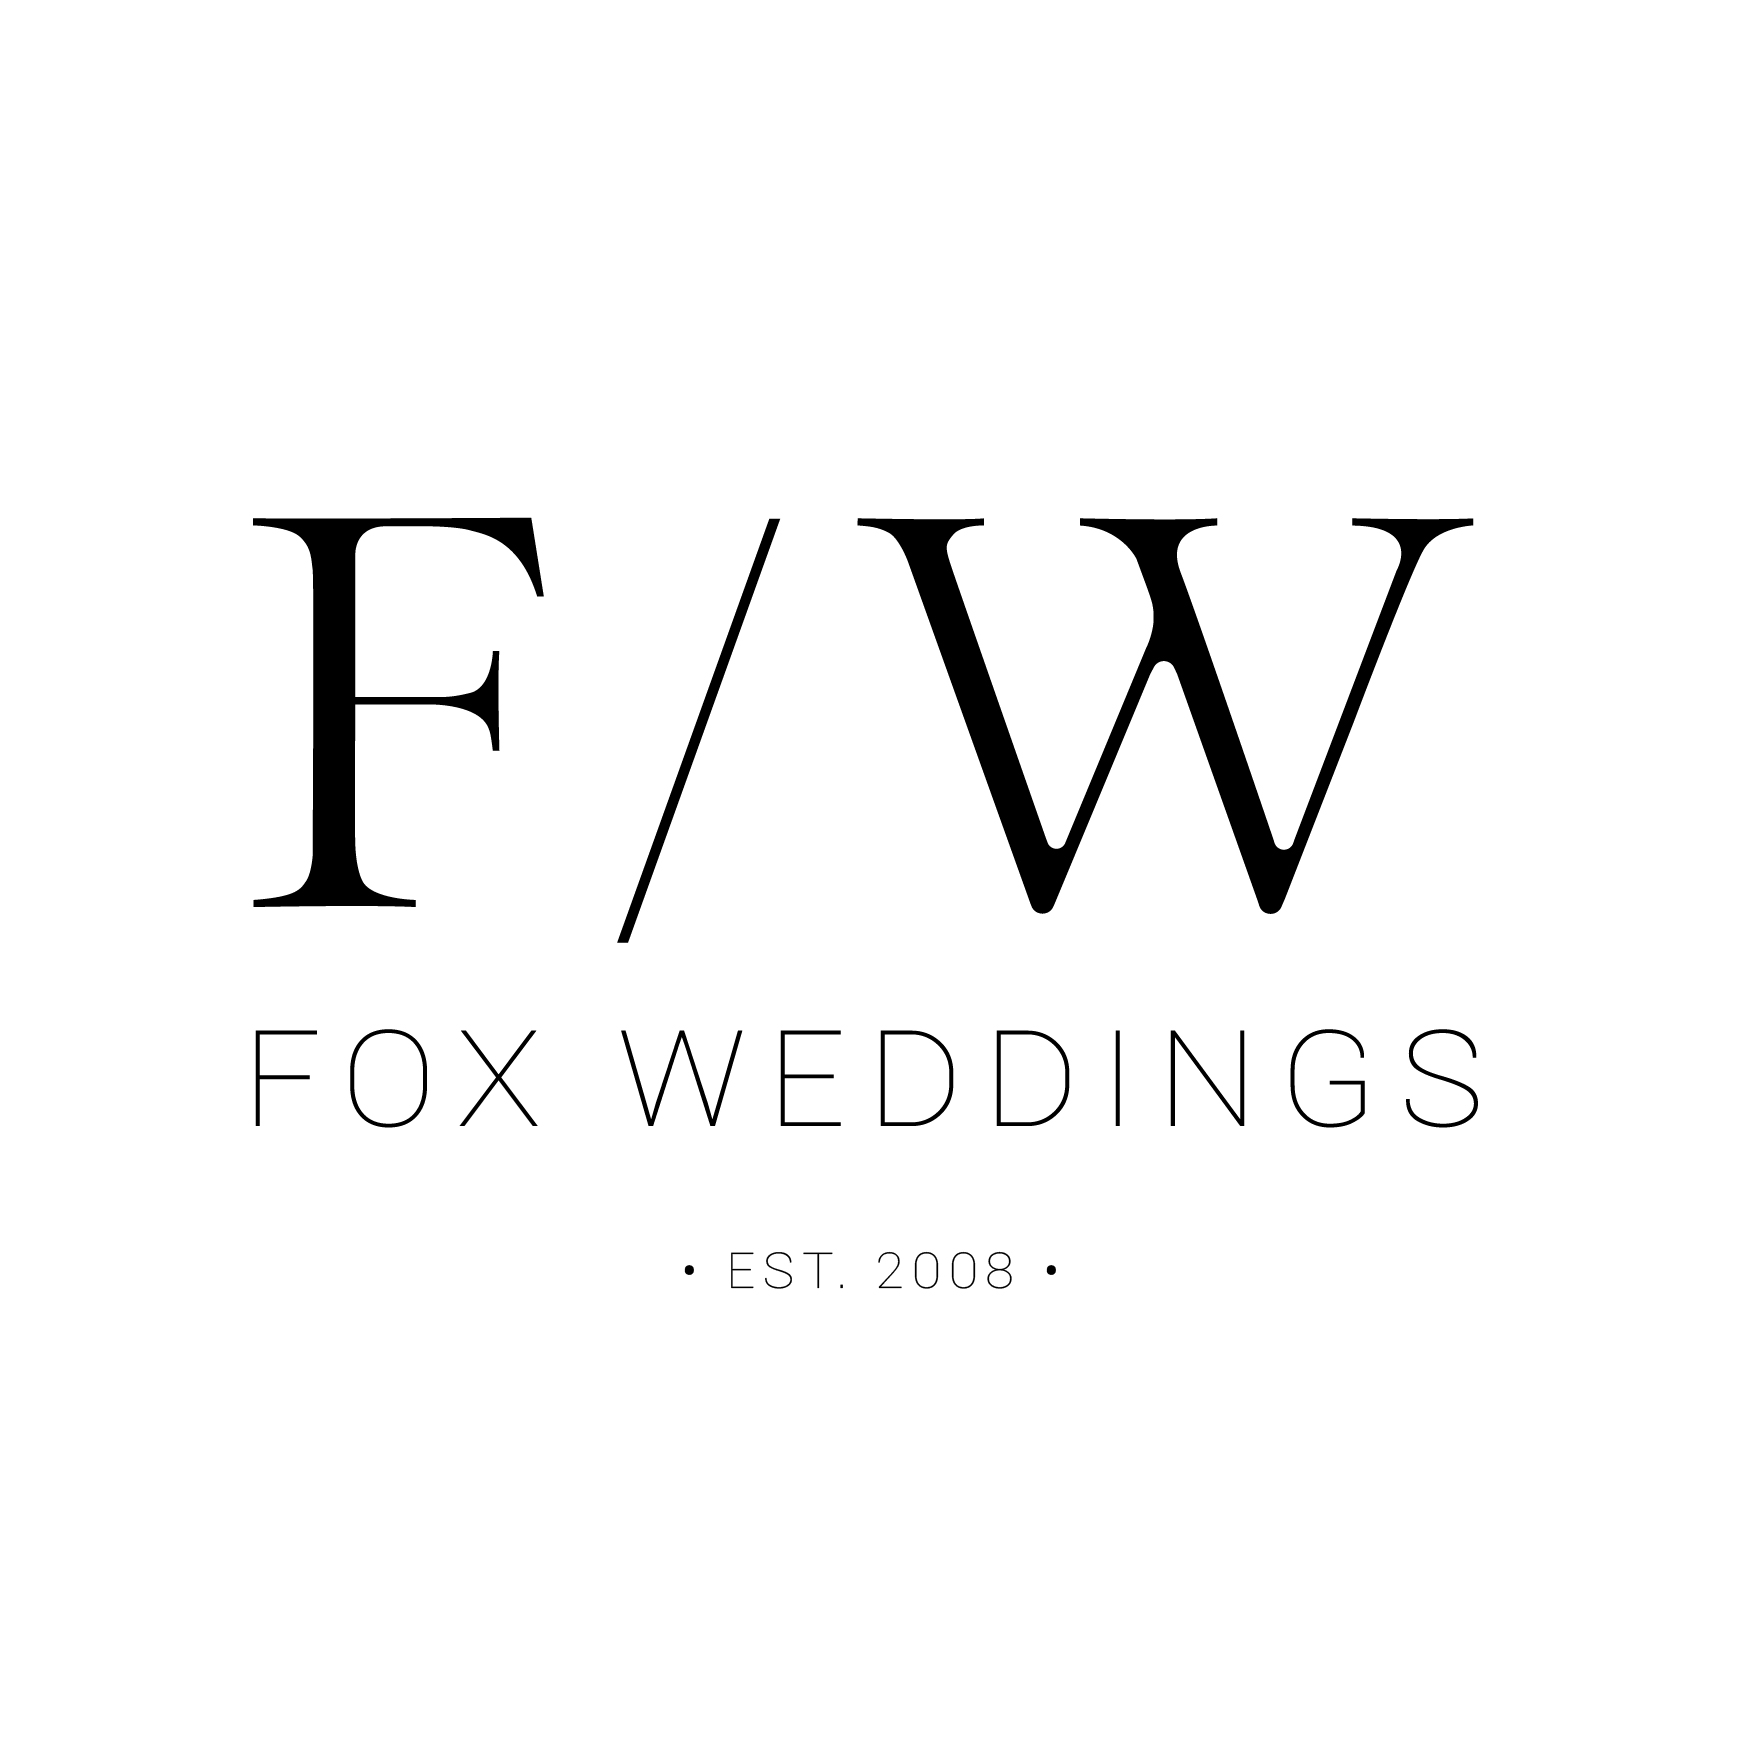 fox weddings.jpg